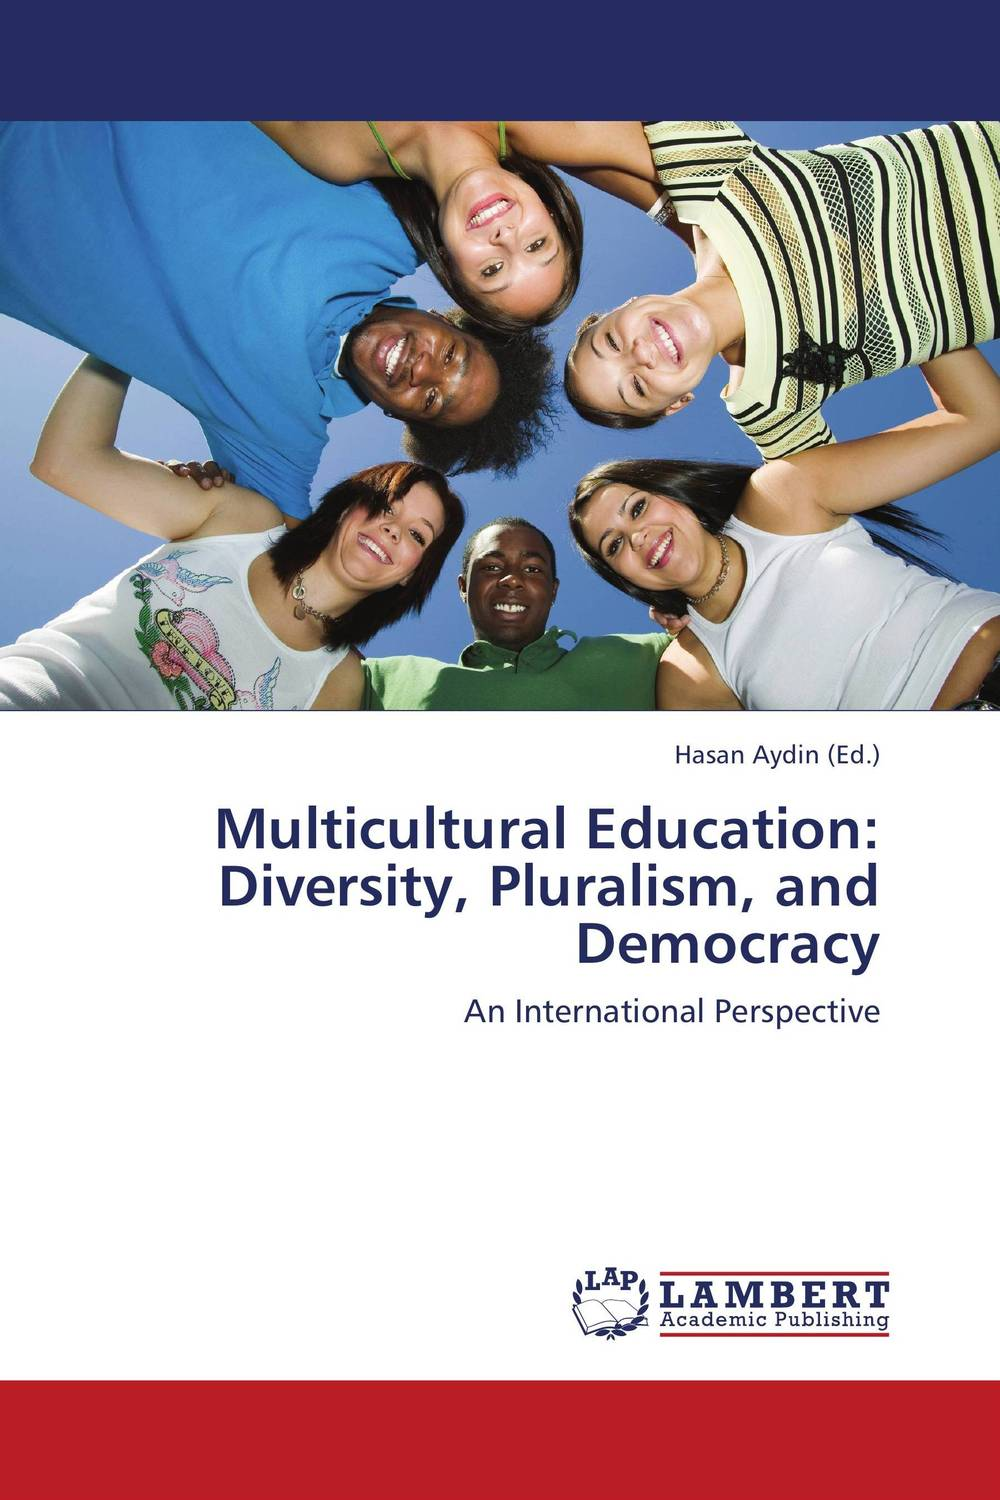 a look at multicultural education in america Multiculturalism in higher education multicultural education, and ethnicstudies, the term diversity will be used but what do diversity requirements look like.